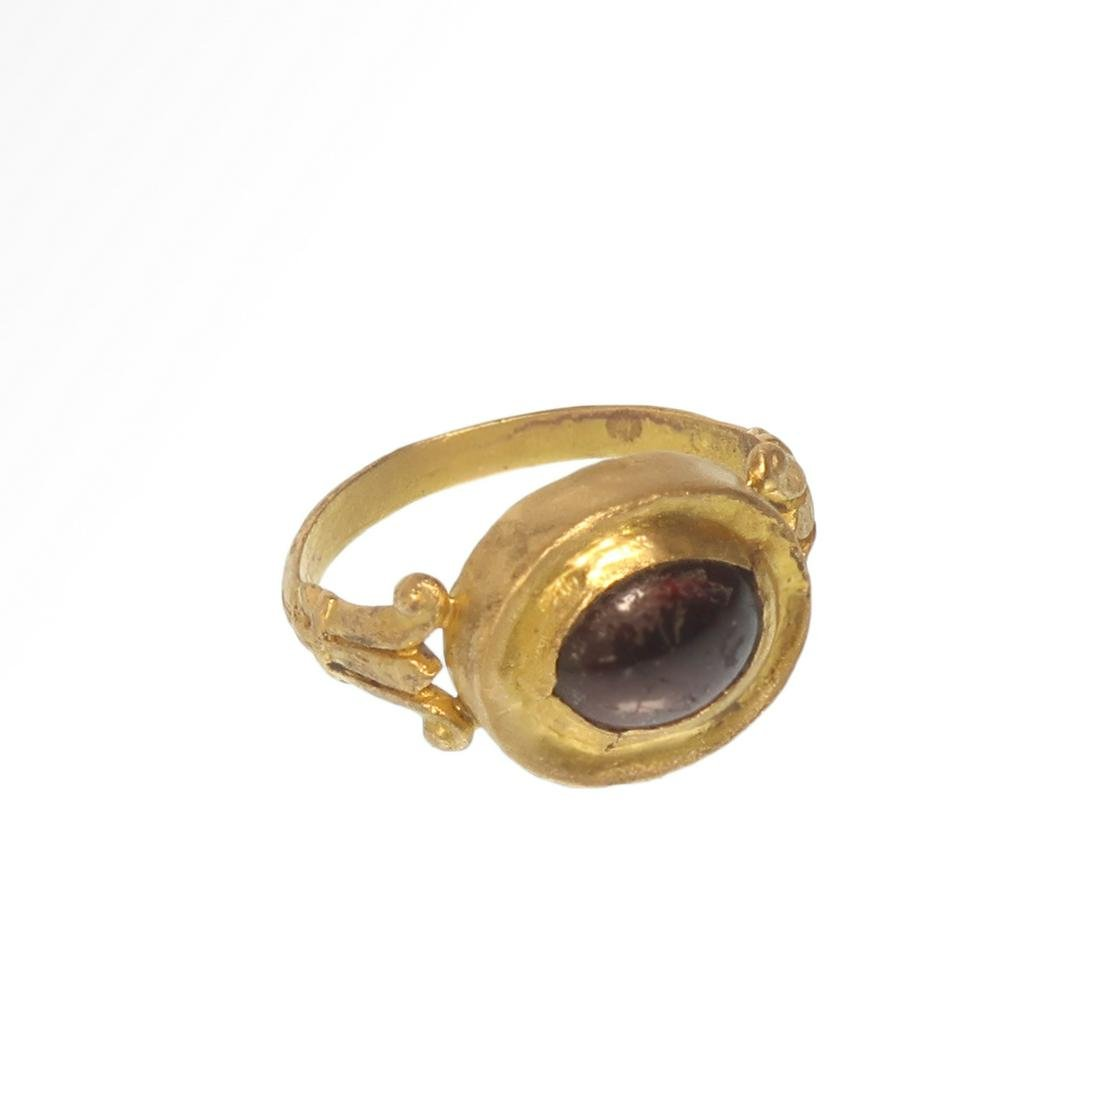 Roman Gold Ring with Cabochon Garnet,  c. 2nd century